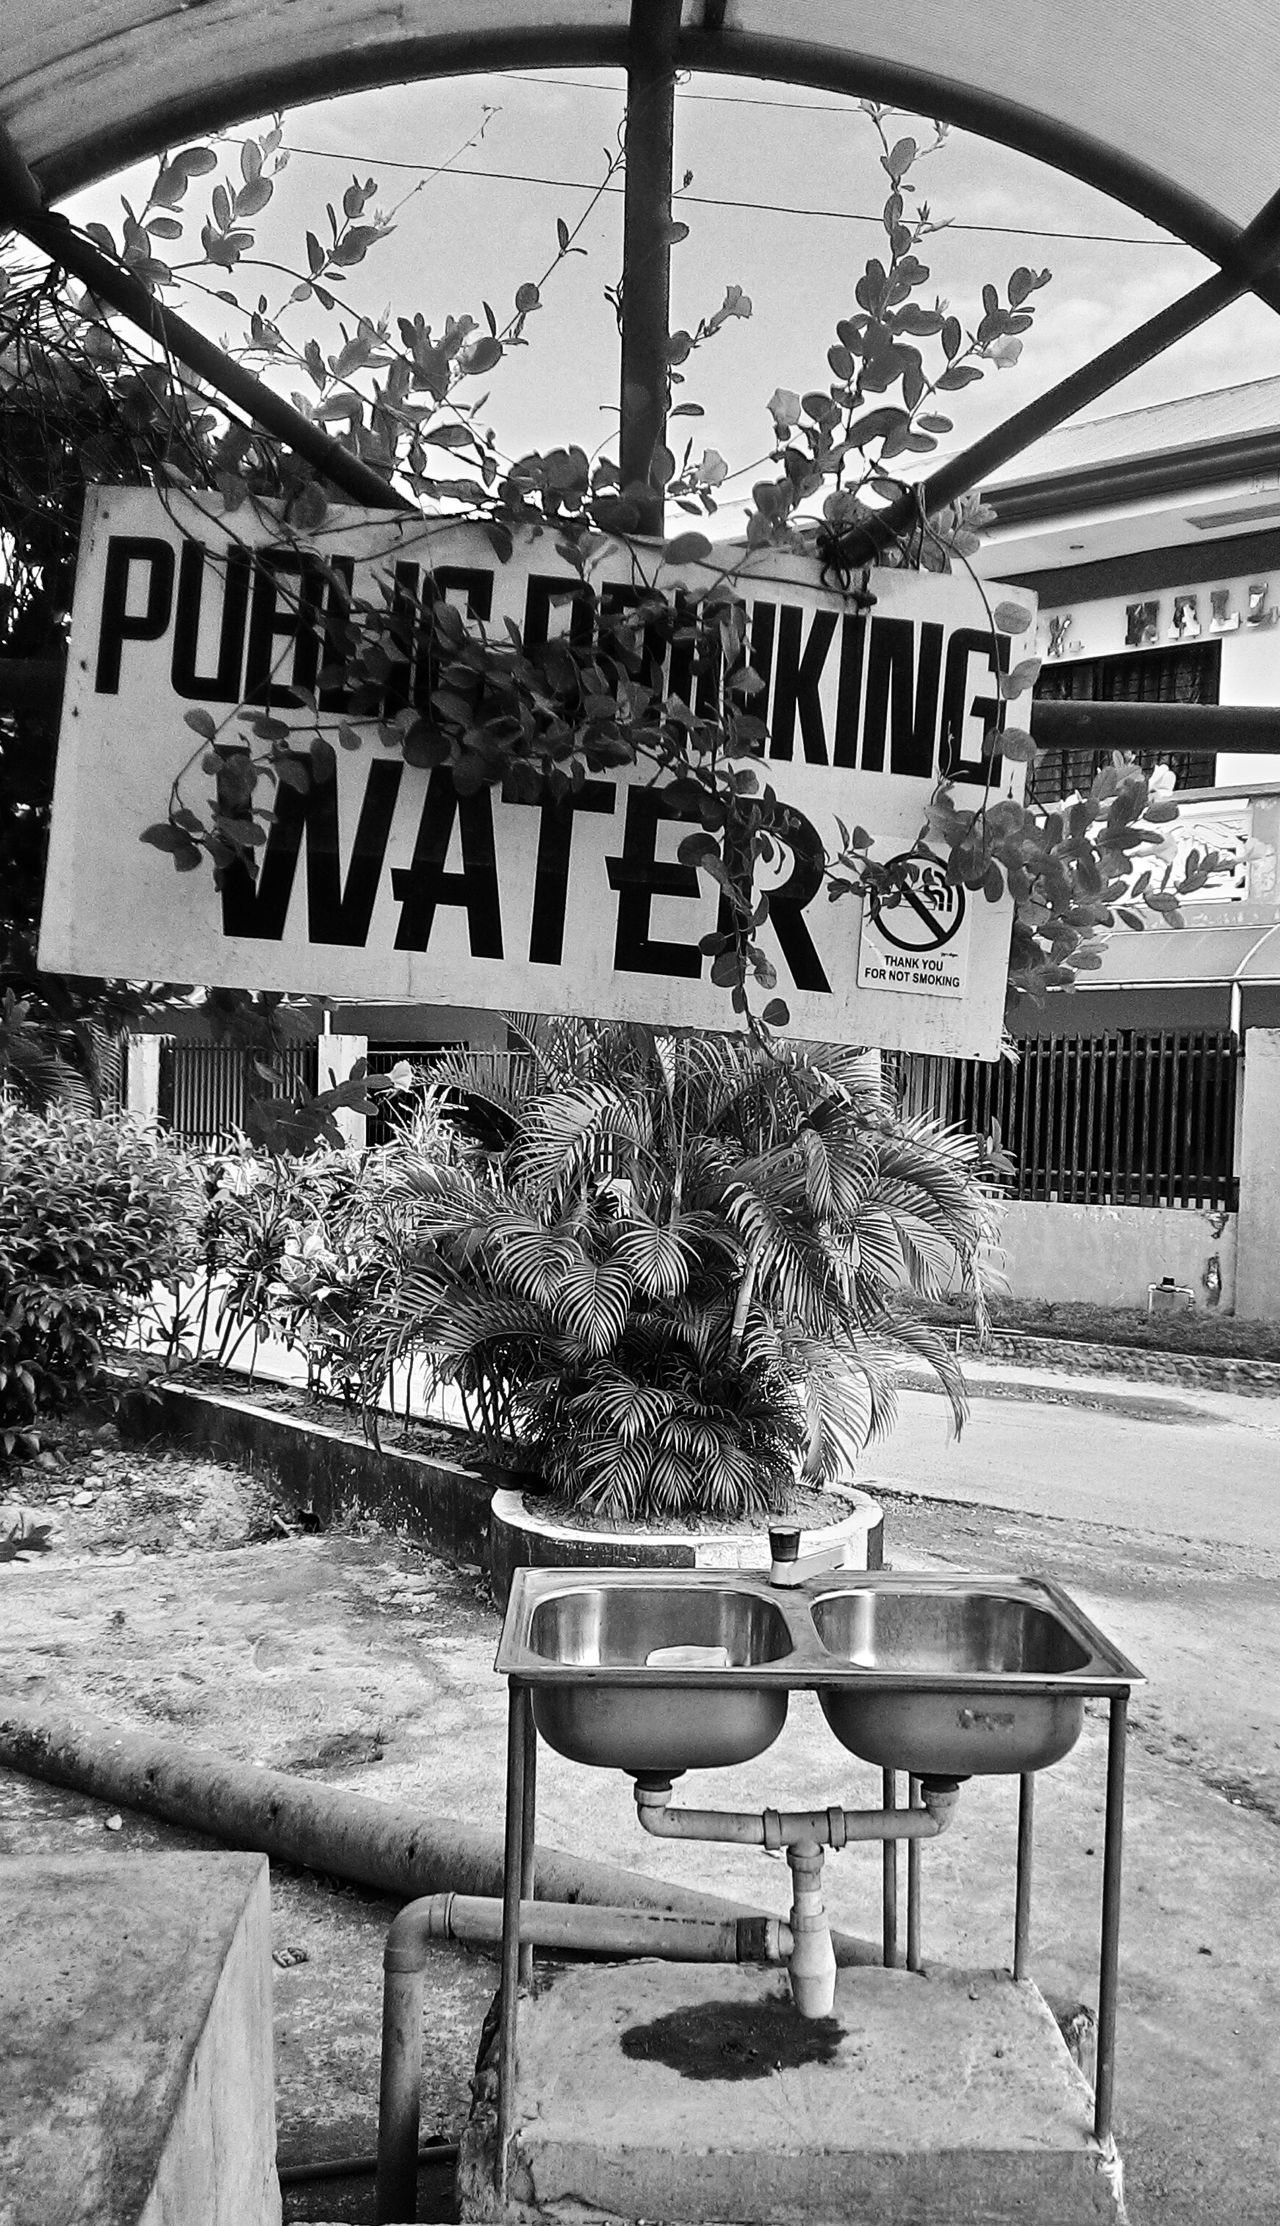 A public drinking water area, good for joggers and hikers what a clever idea. Blackandwhite Mobilephotography Amazingidea CleverIdea Nice